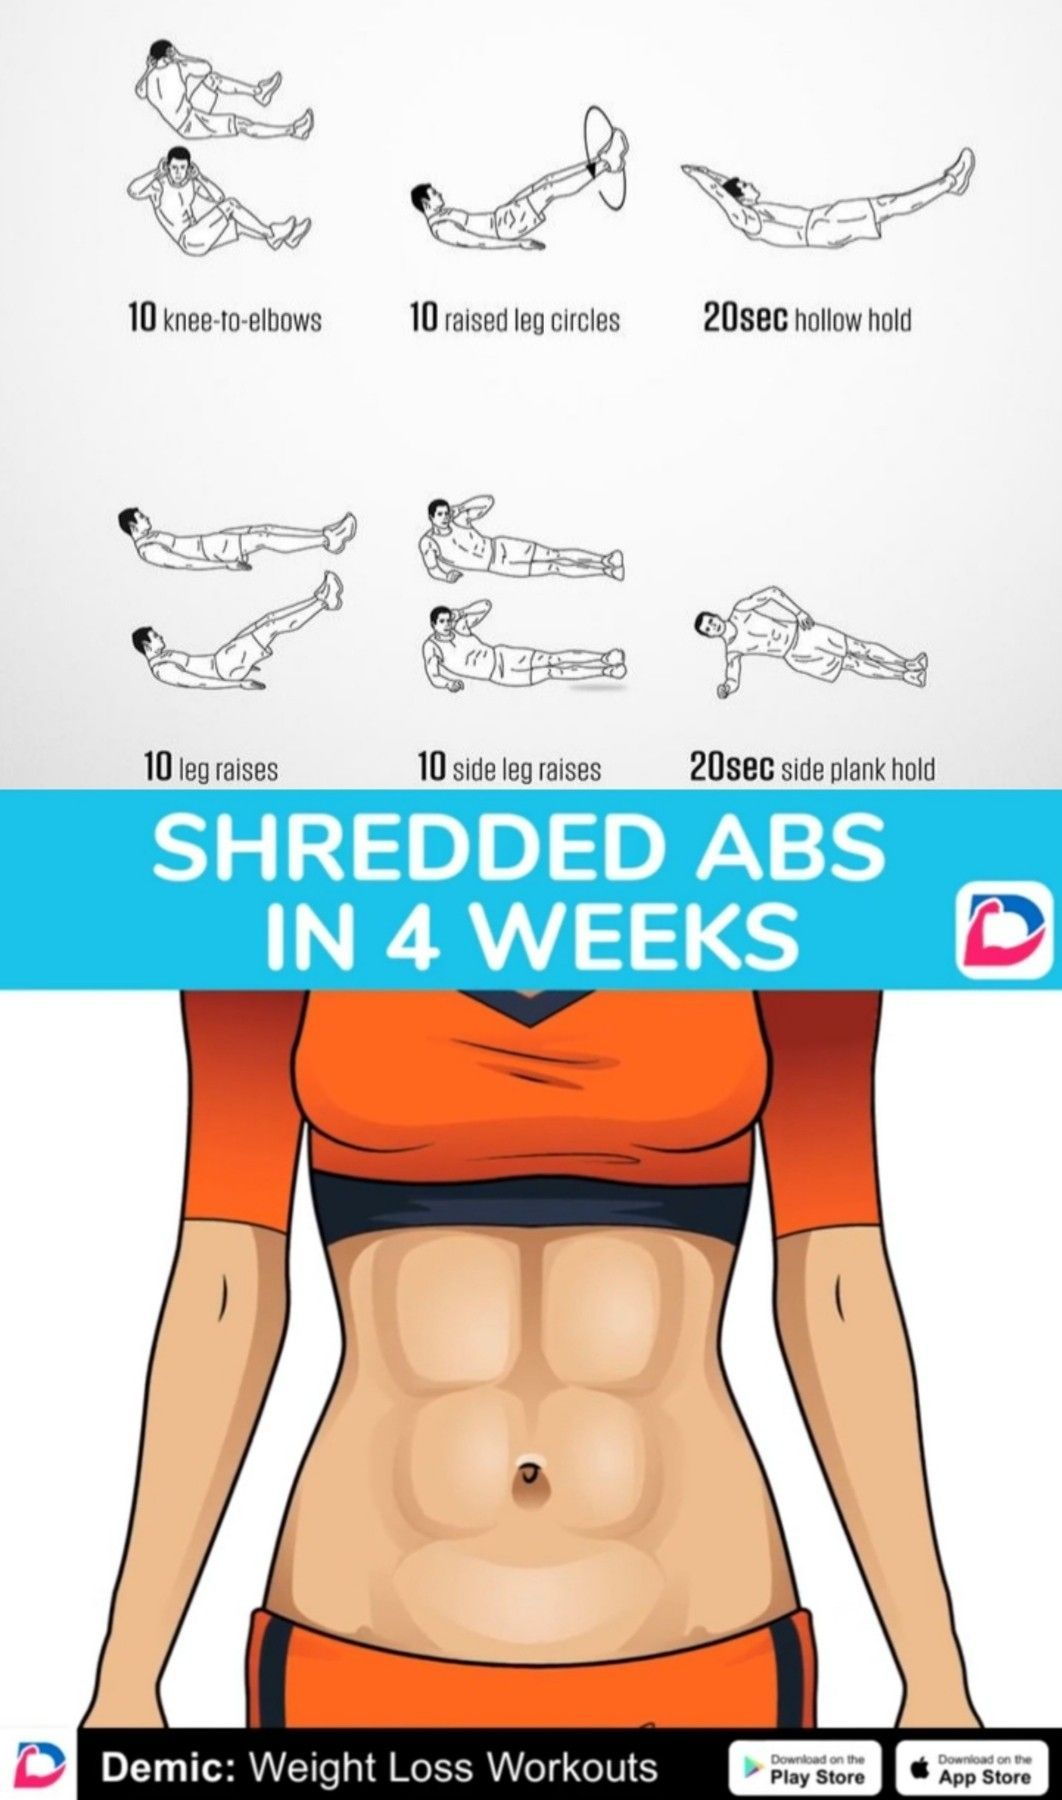 Shredded Abs In 4 Weeks #health #fitness #workout #exercise #motivation #abs #diet